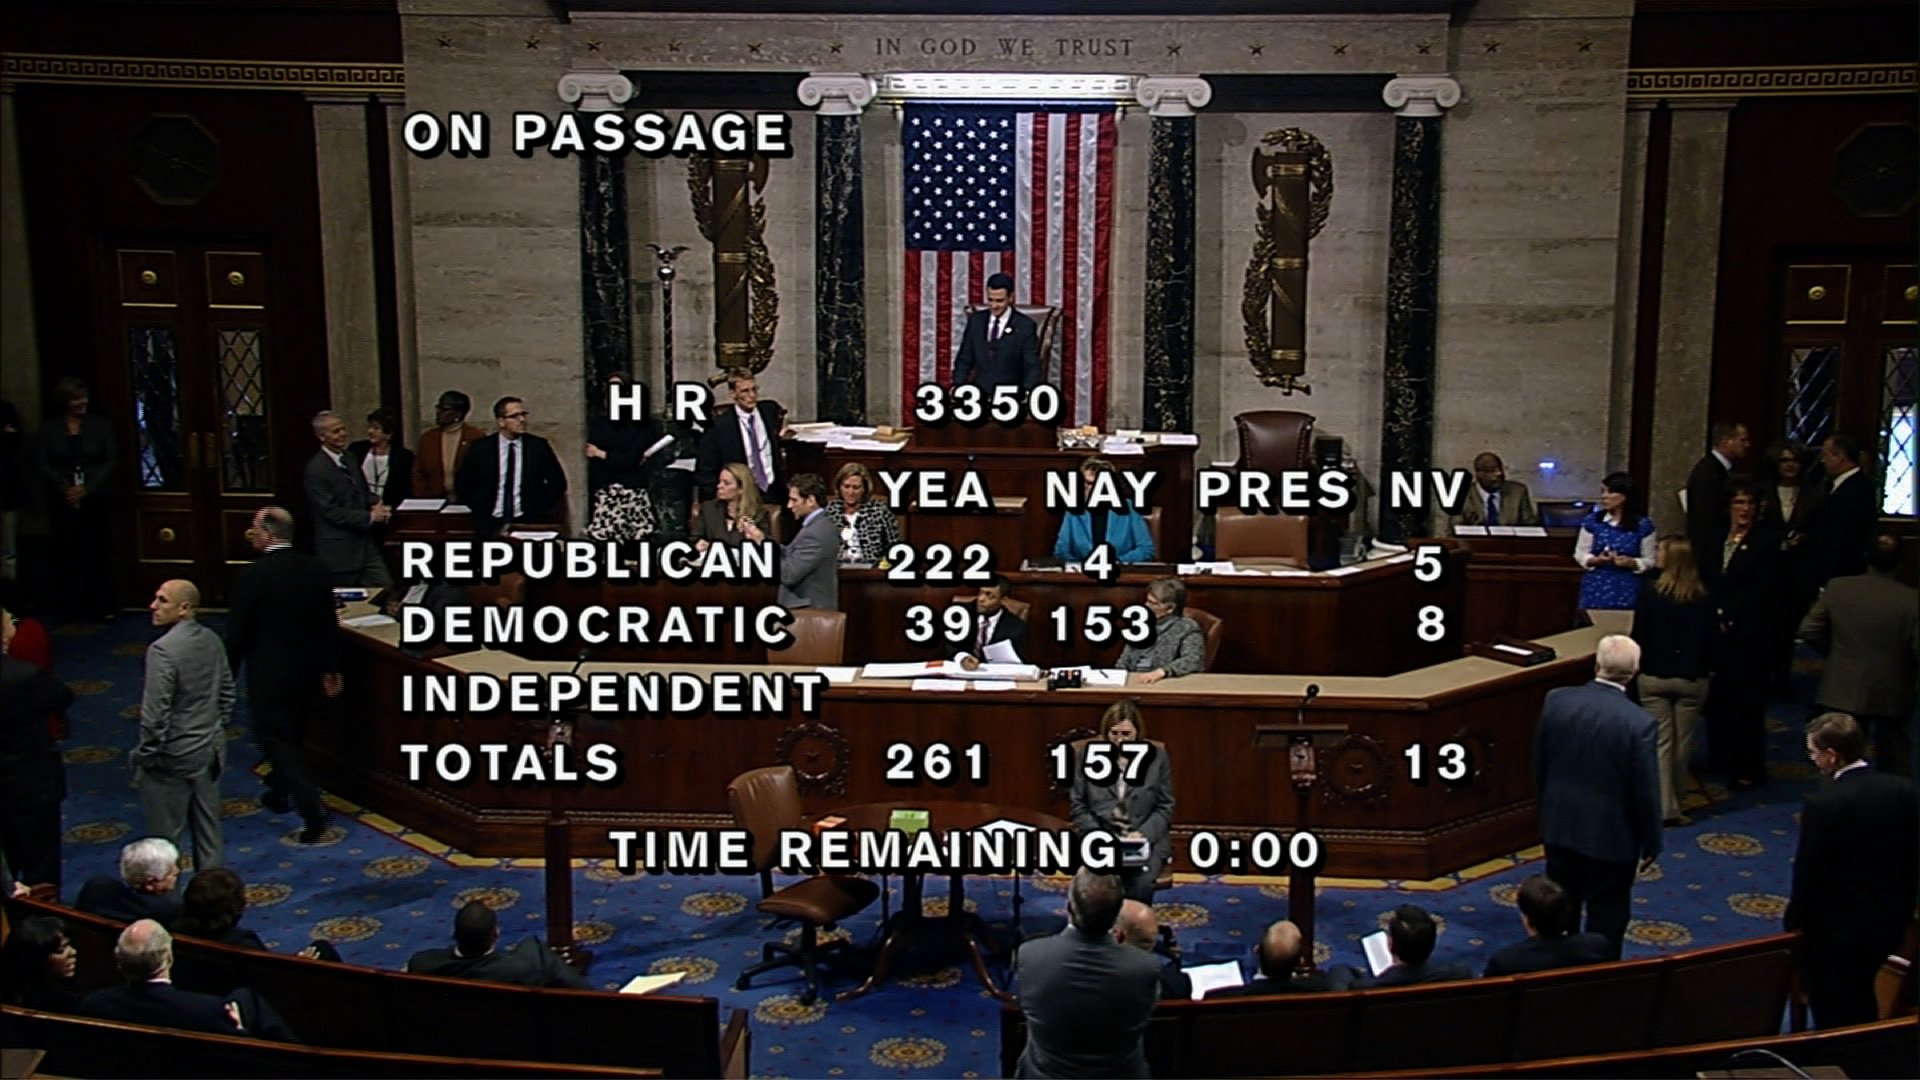 The GOP-controlled House voted 261-157 Friday, November 15, 2013, to approve a Republican bill giving health insurers the option of extending plans through 2014 that would otherwise be canceled for not complying with Affordable Care Act standards.